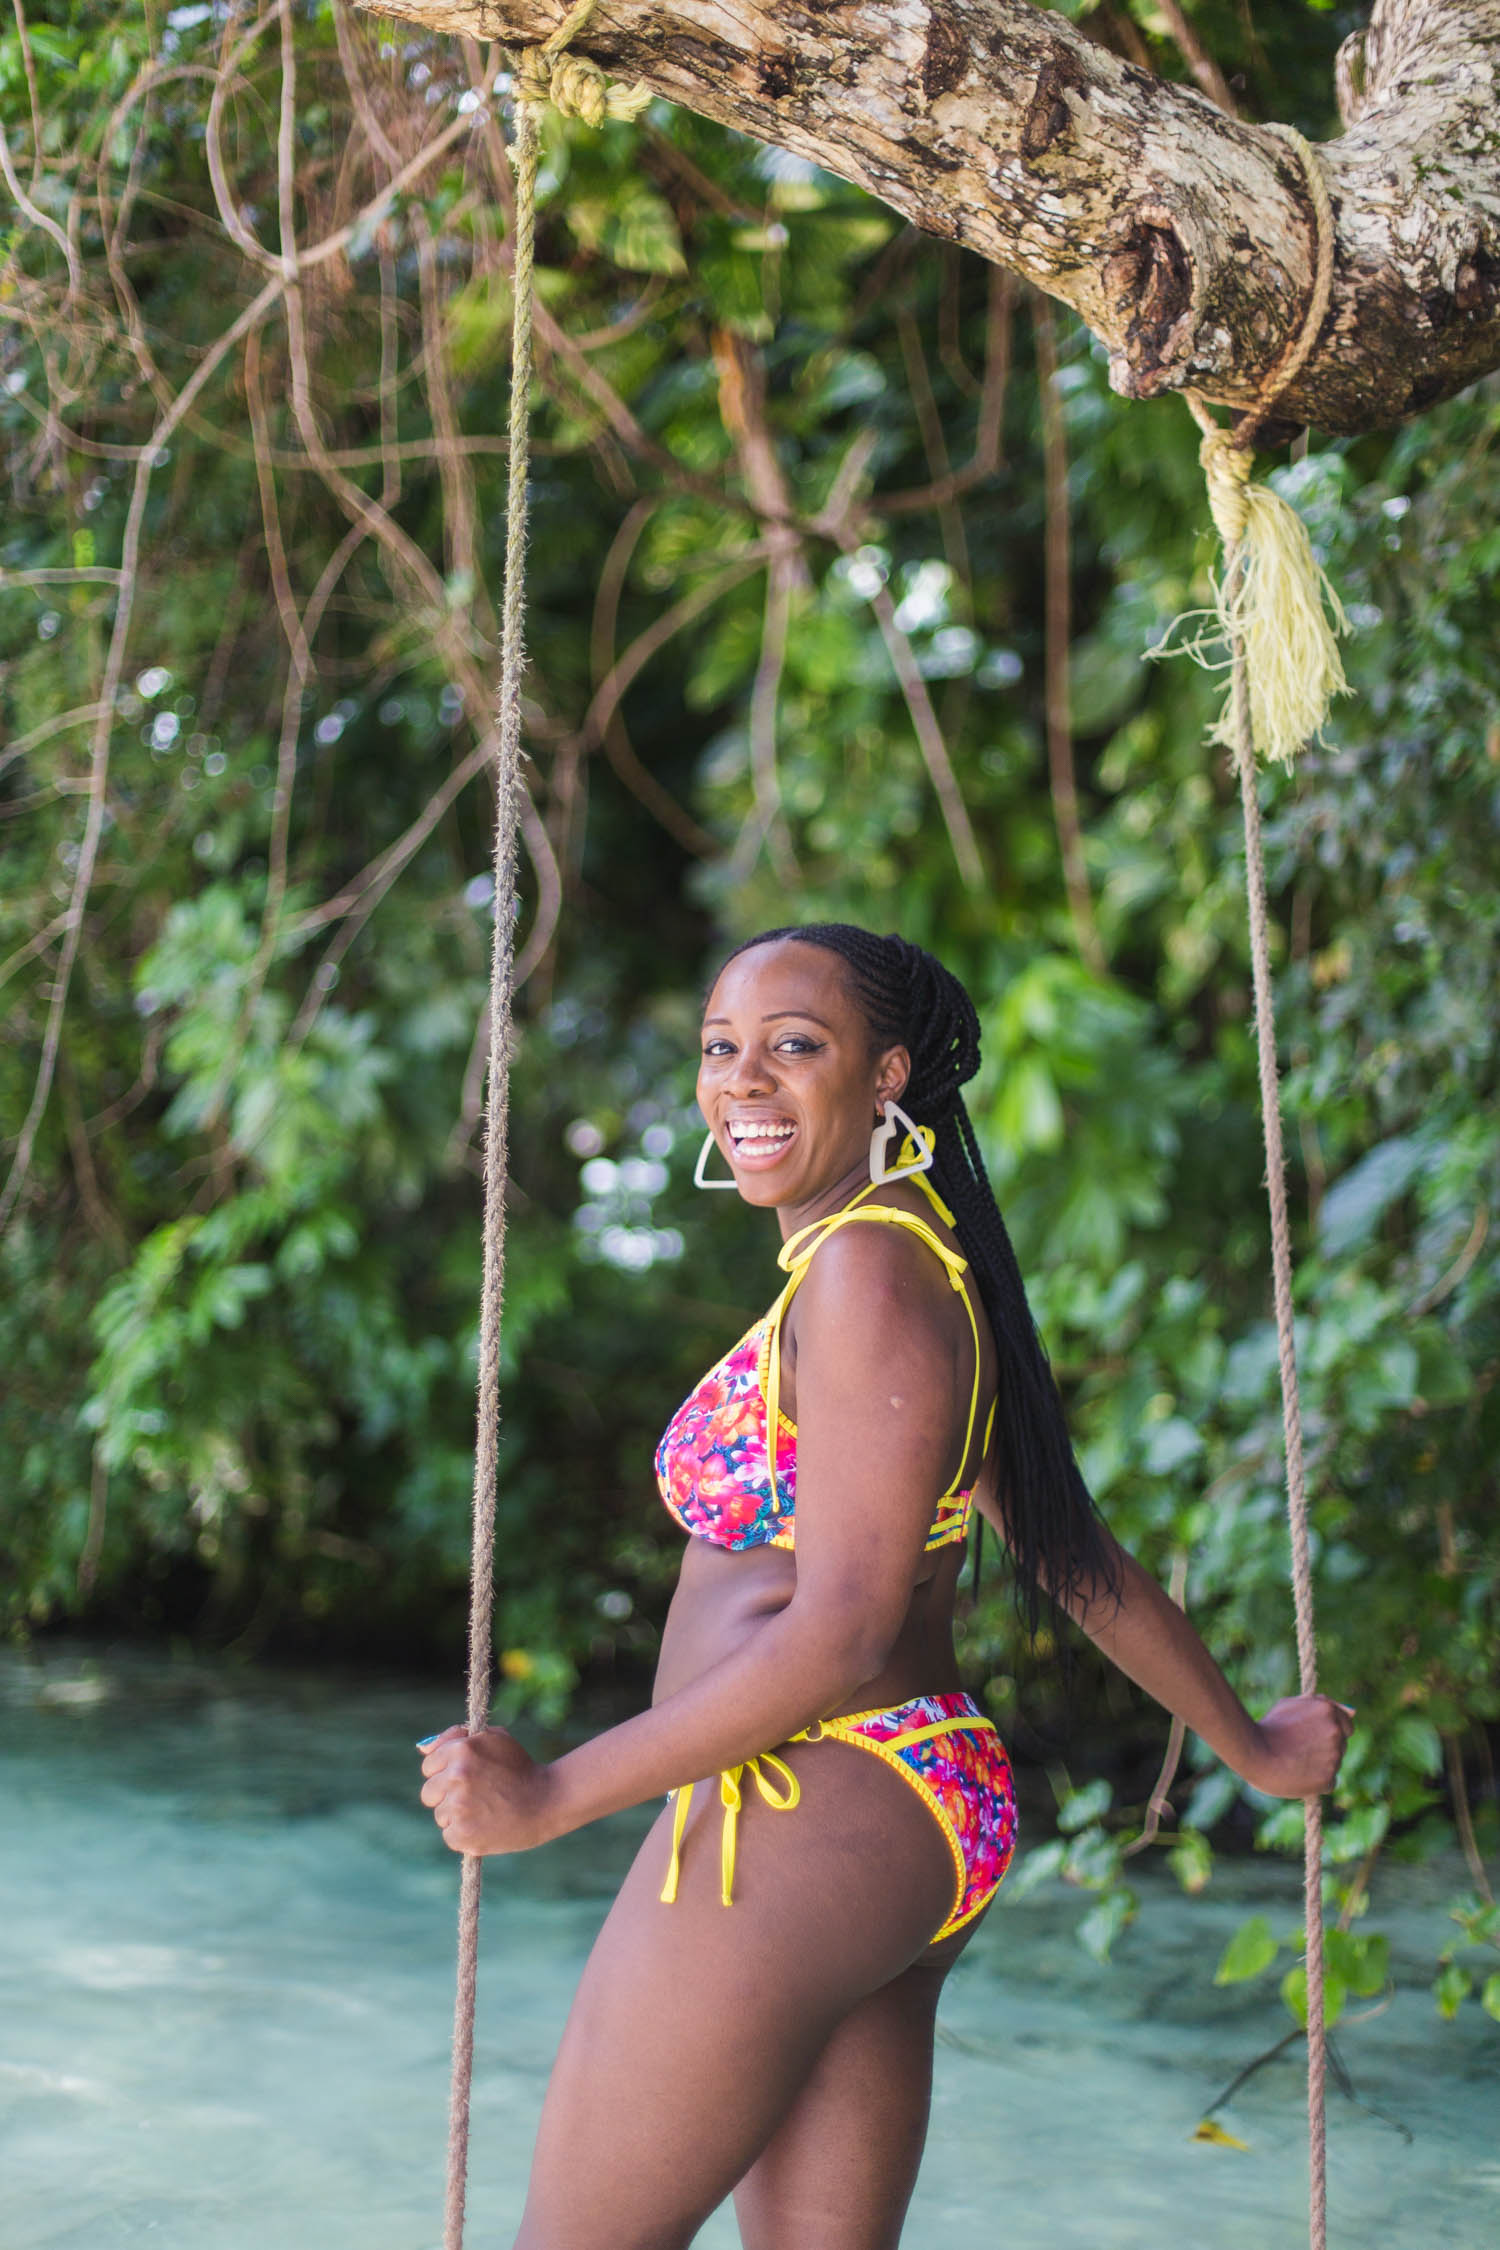 Curious about the town of Port Antonio, known as the Jamaican Riviera? Travel blogger Kristabel Plummer reveals why you should seek out authentic experiences at Boston Bay Jerk Centre, Frenchman's Cove and Trident Hotel.